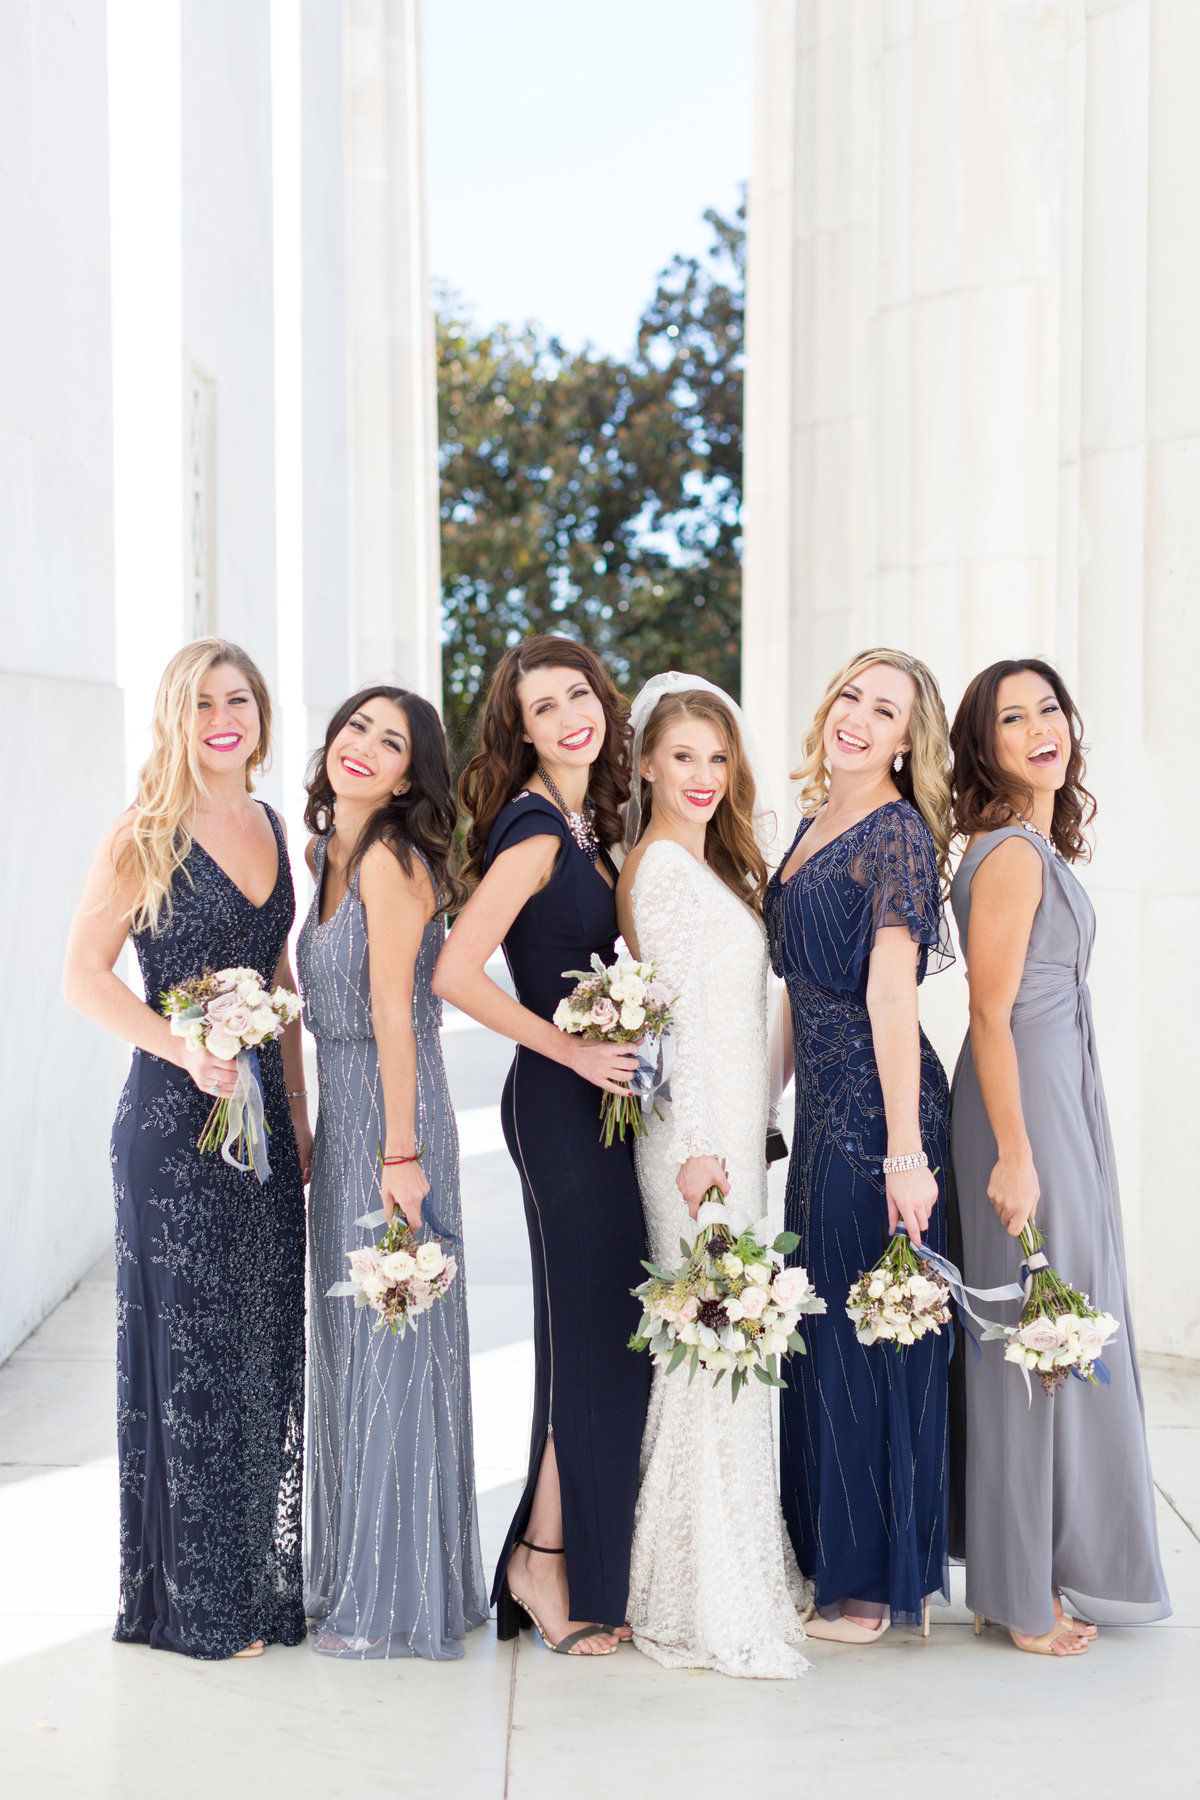 GianniotisWedding-BridalParty-40